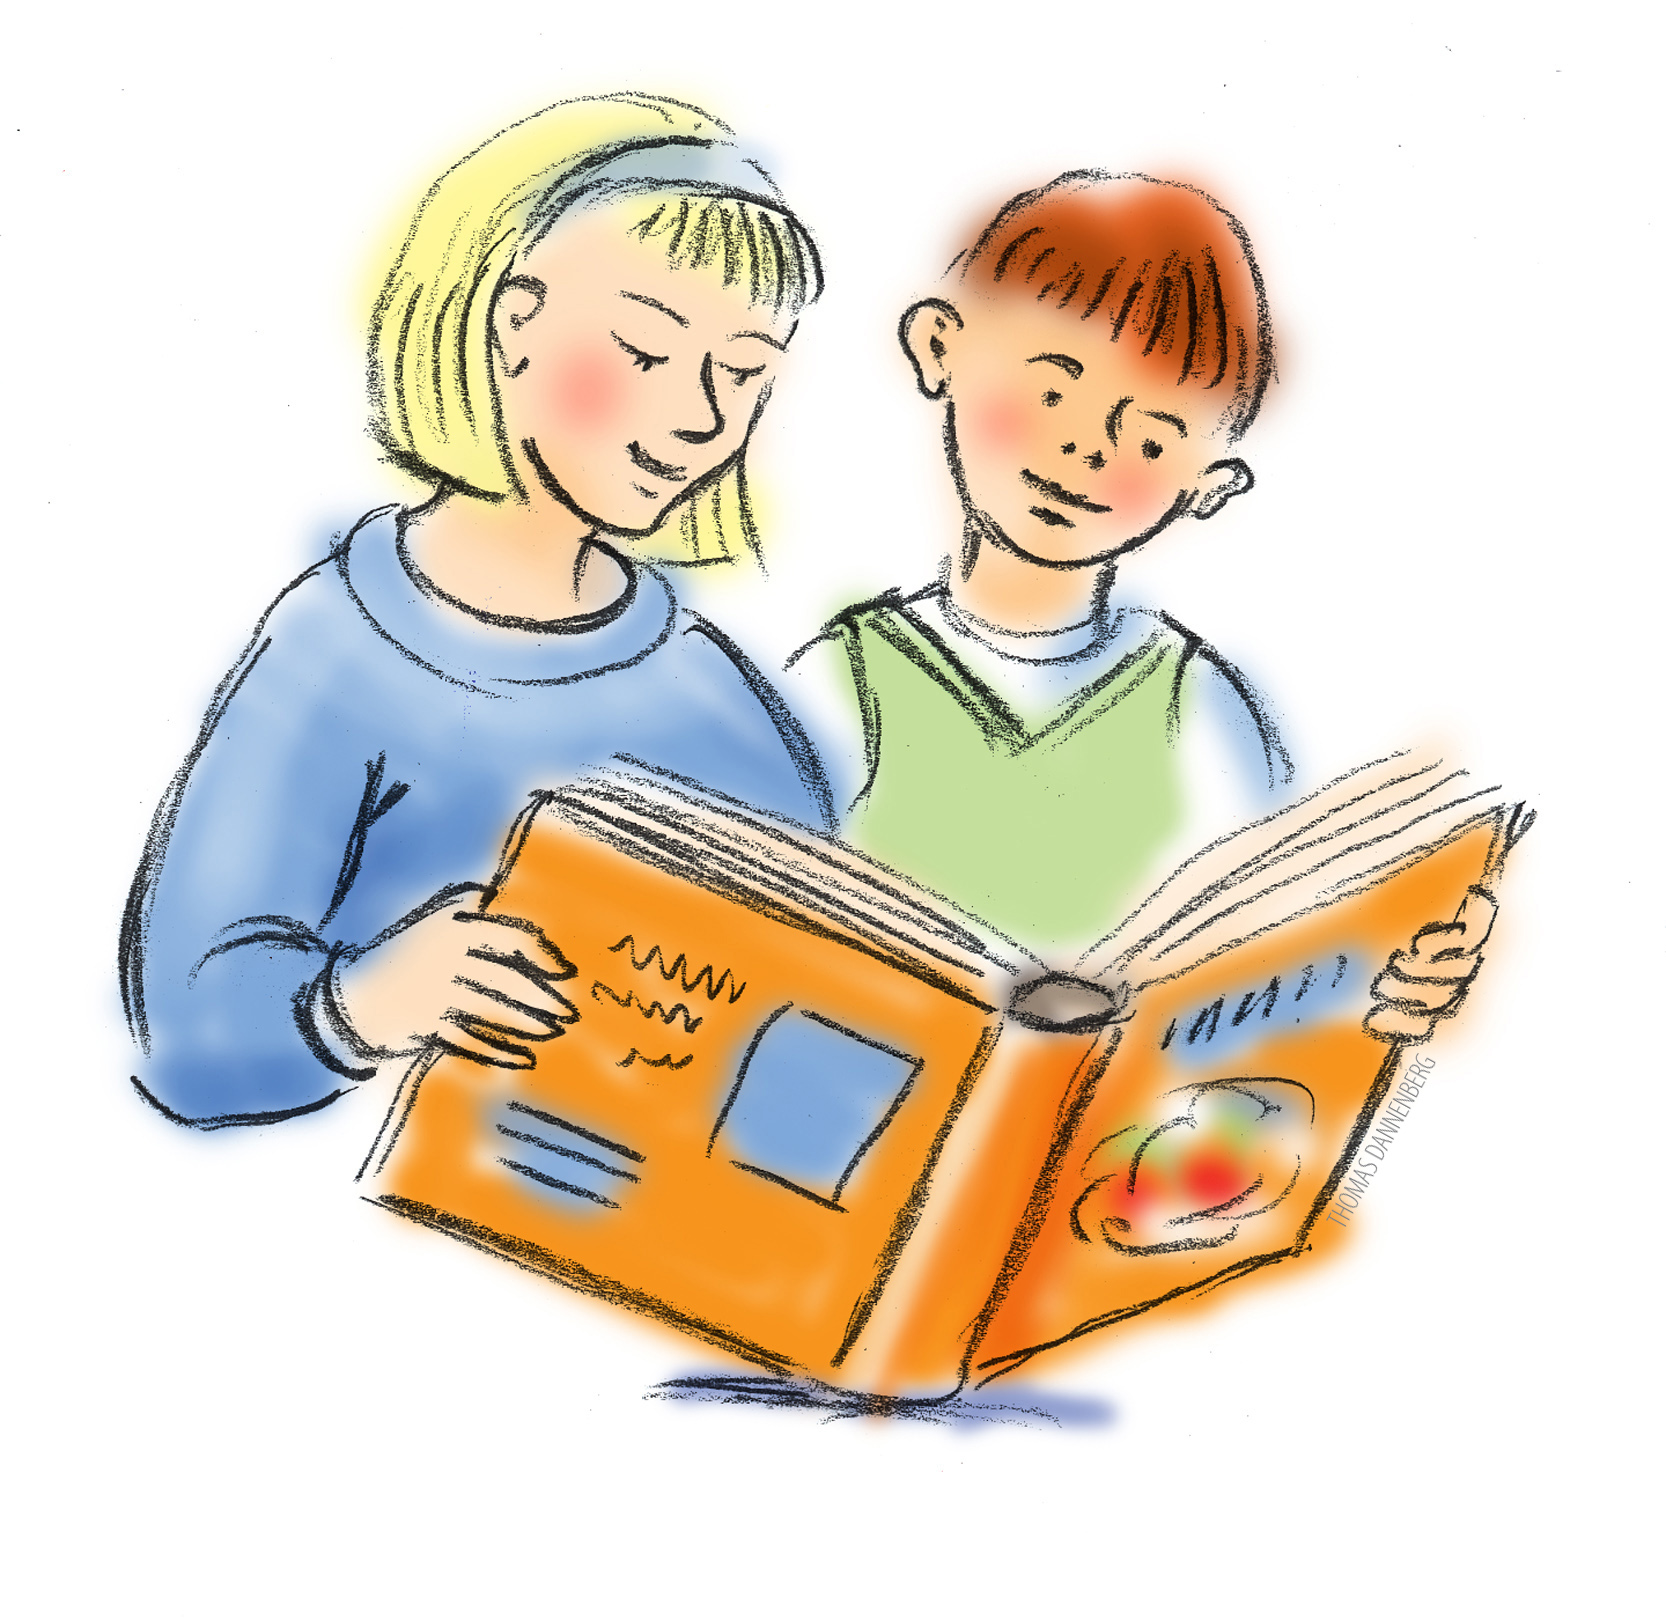 hight resolution of kid reading reading books clipart 8